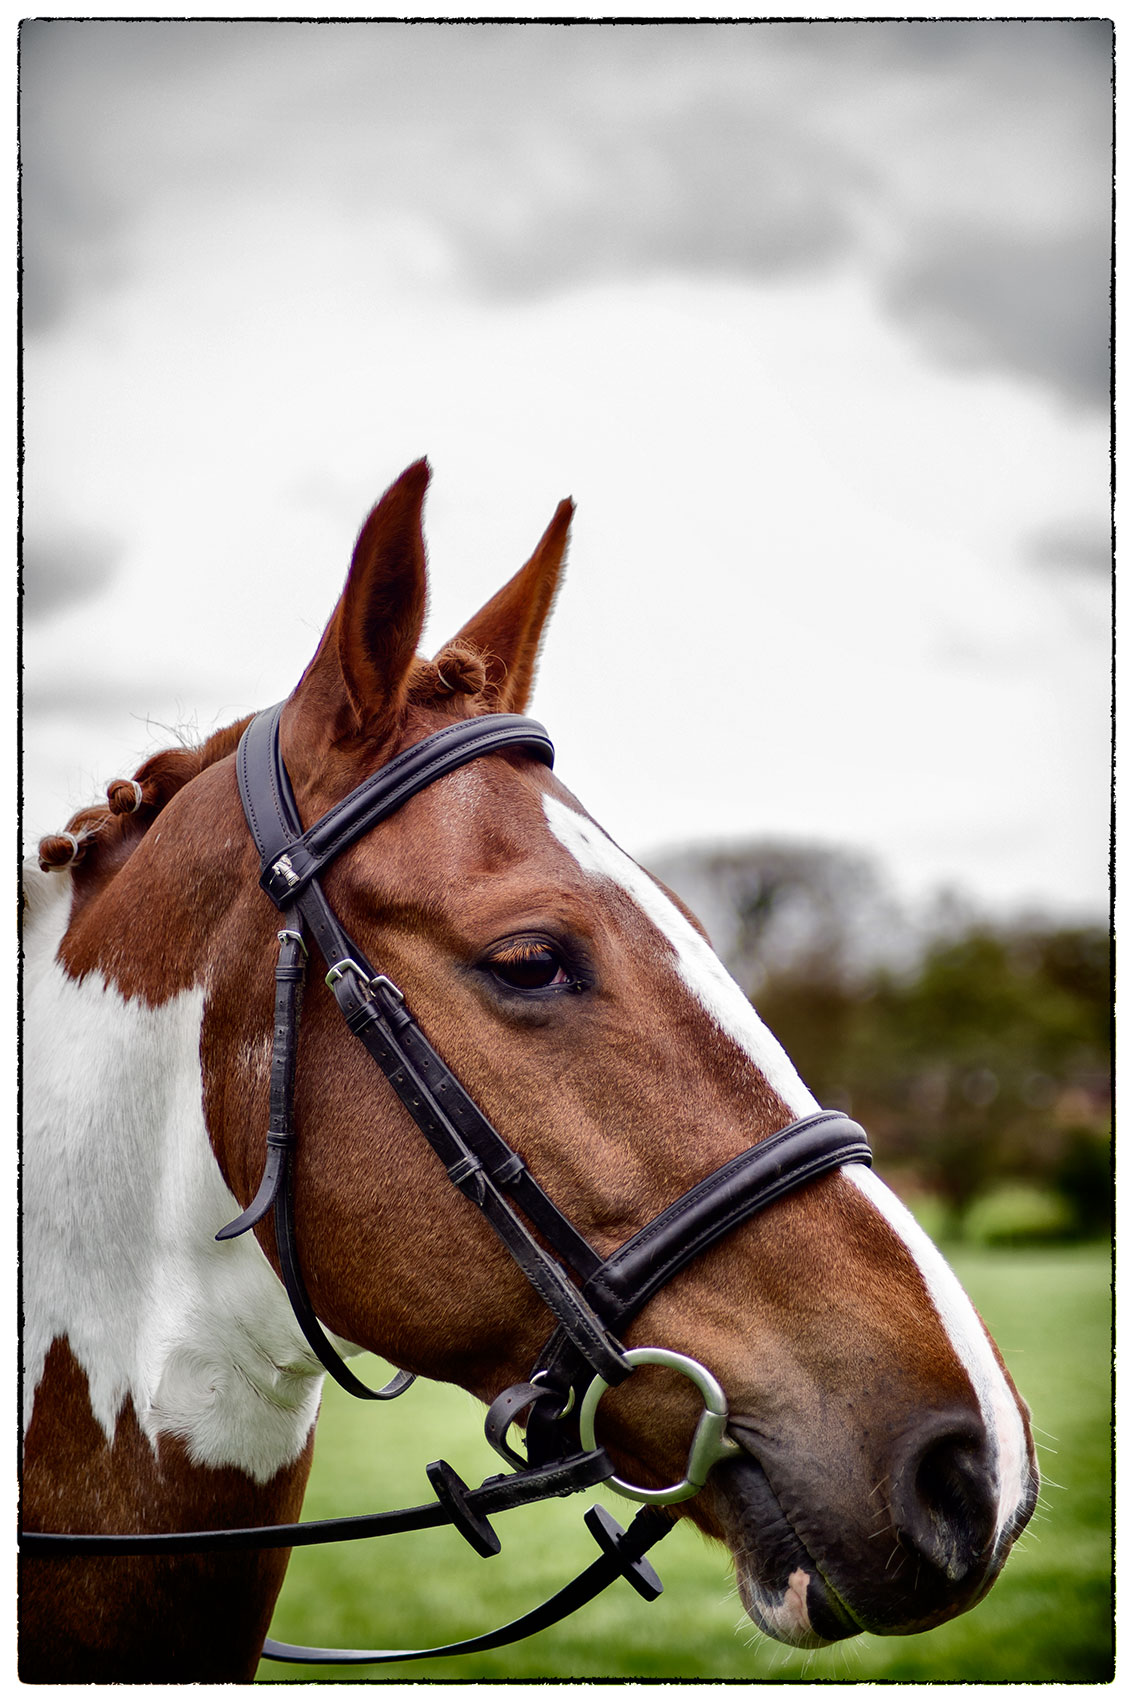 Willow, today at Bradwall Horse trials.